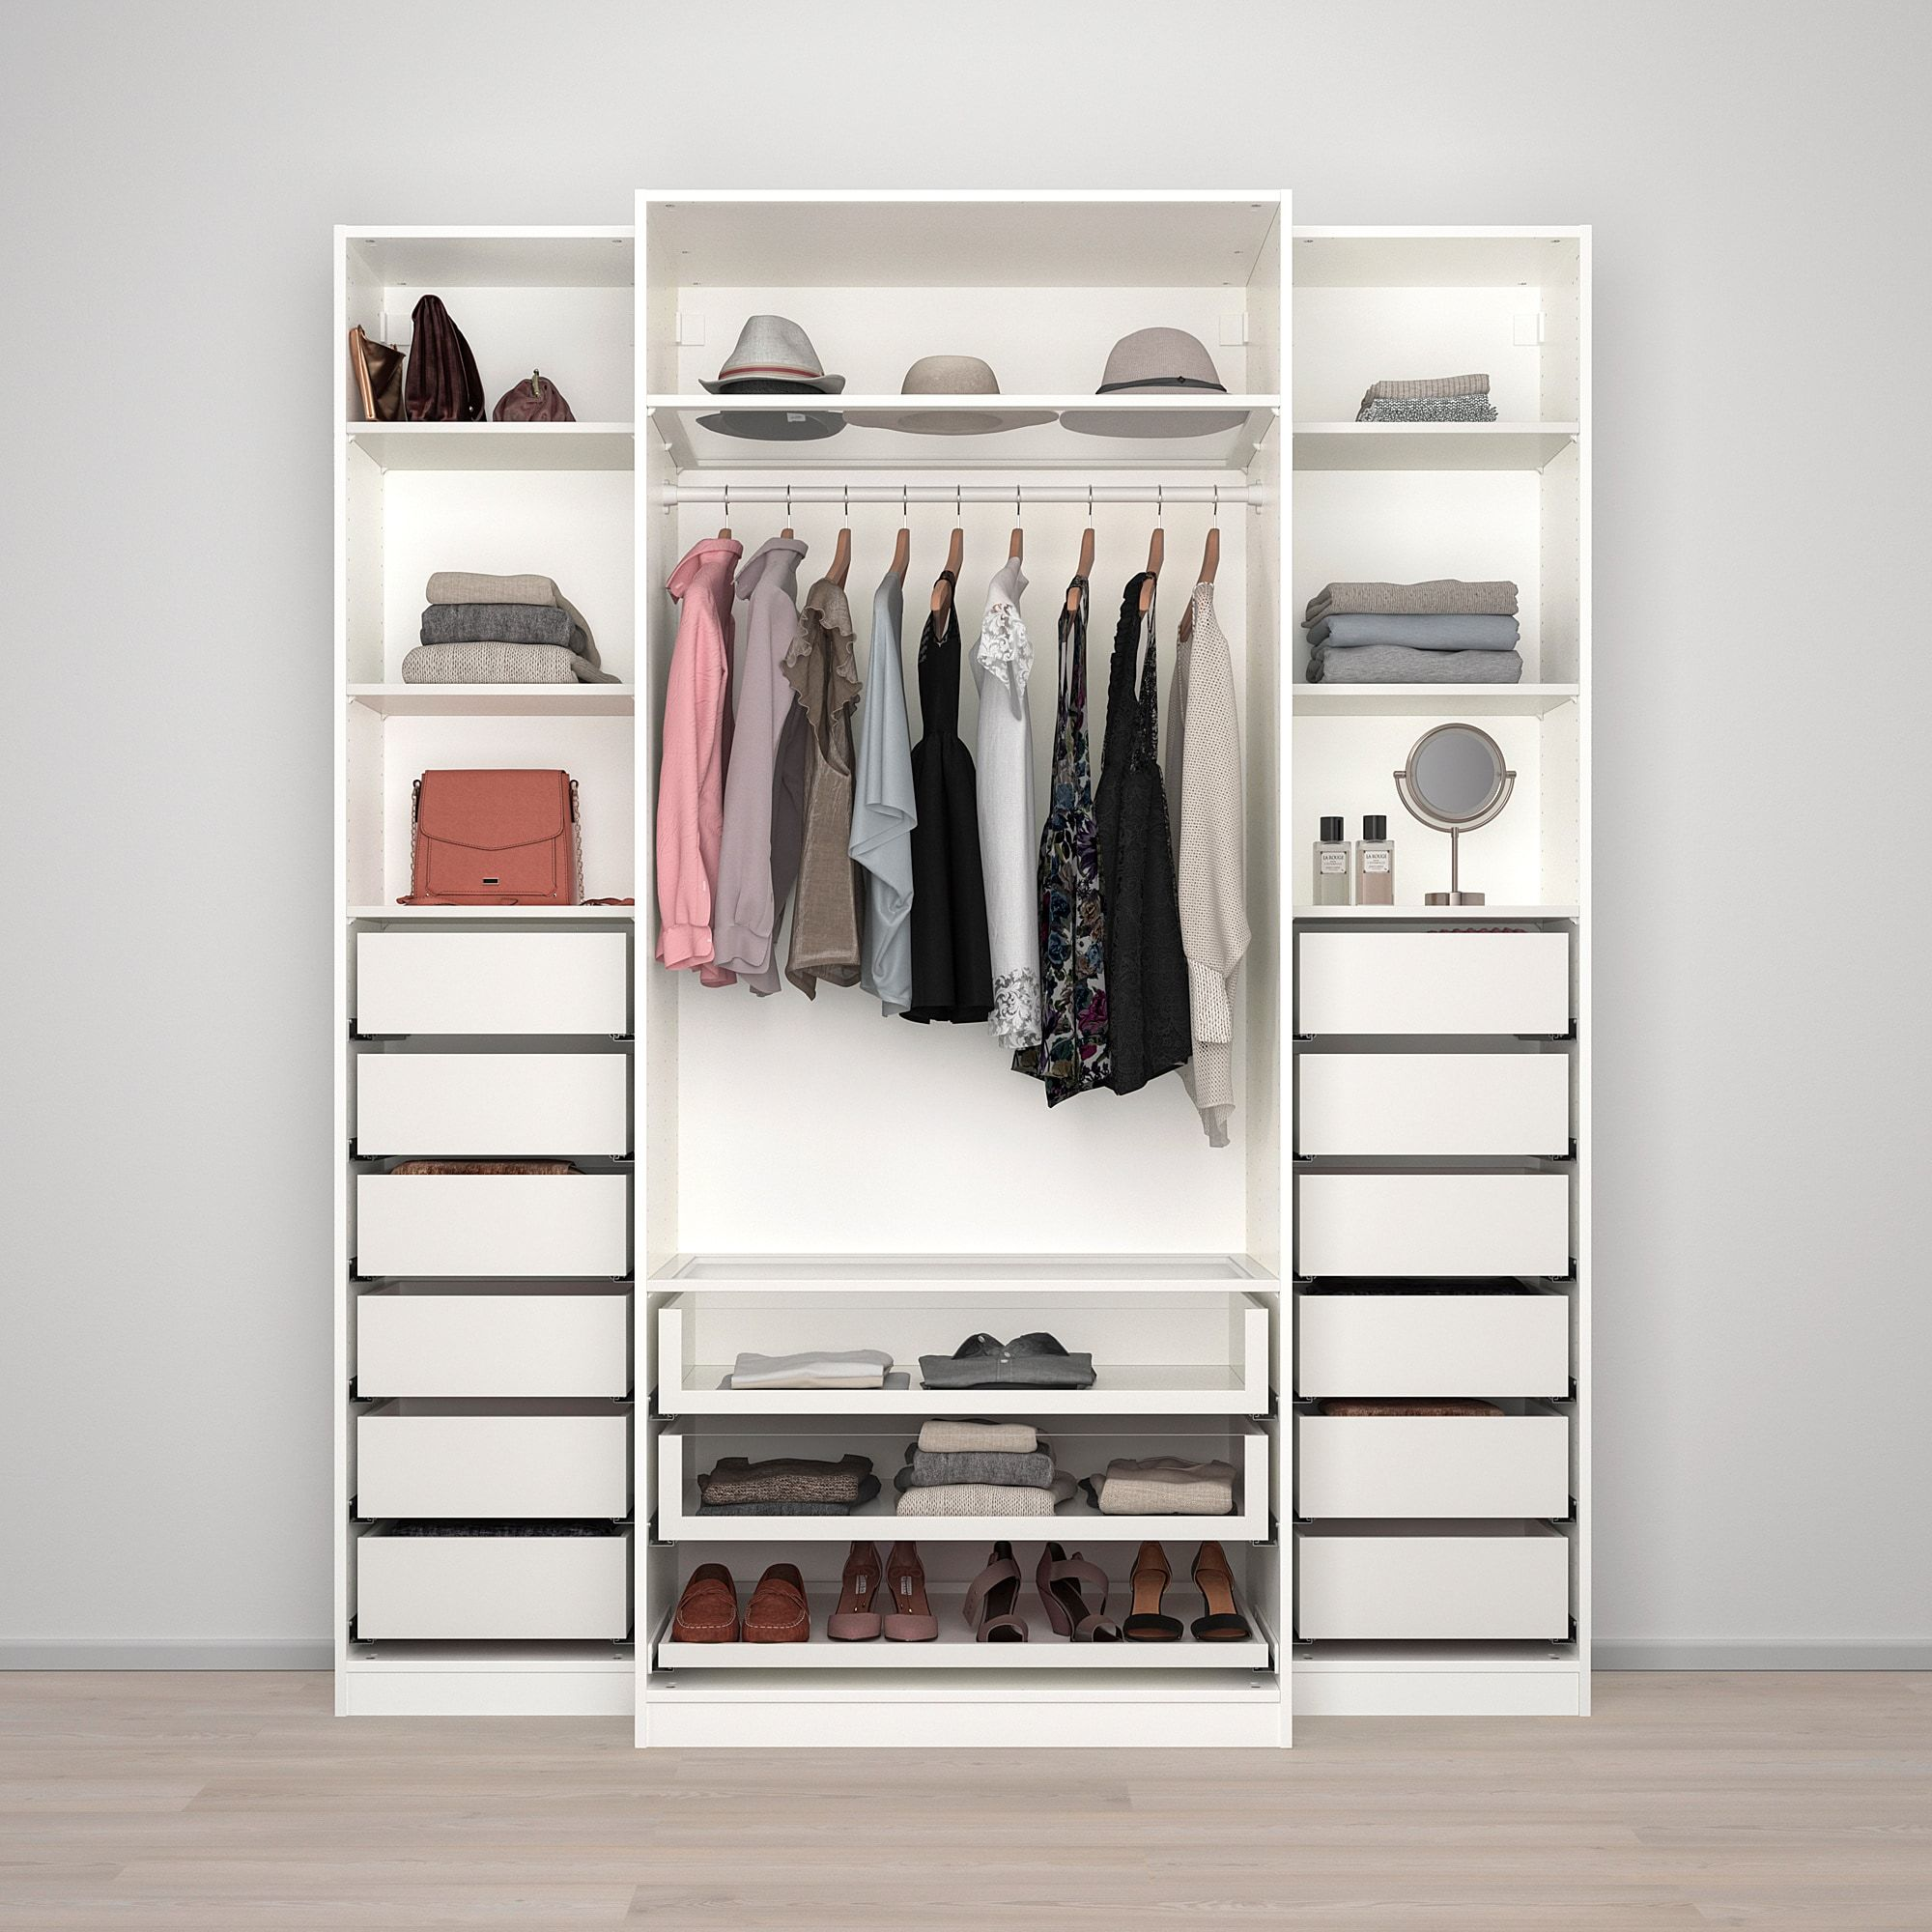 Ikea Guardaroba Pax Planner.Pax Wardrobe White Tyssedal Glass 78 3 4x23 5 8x93 1 8 In